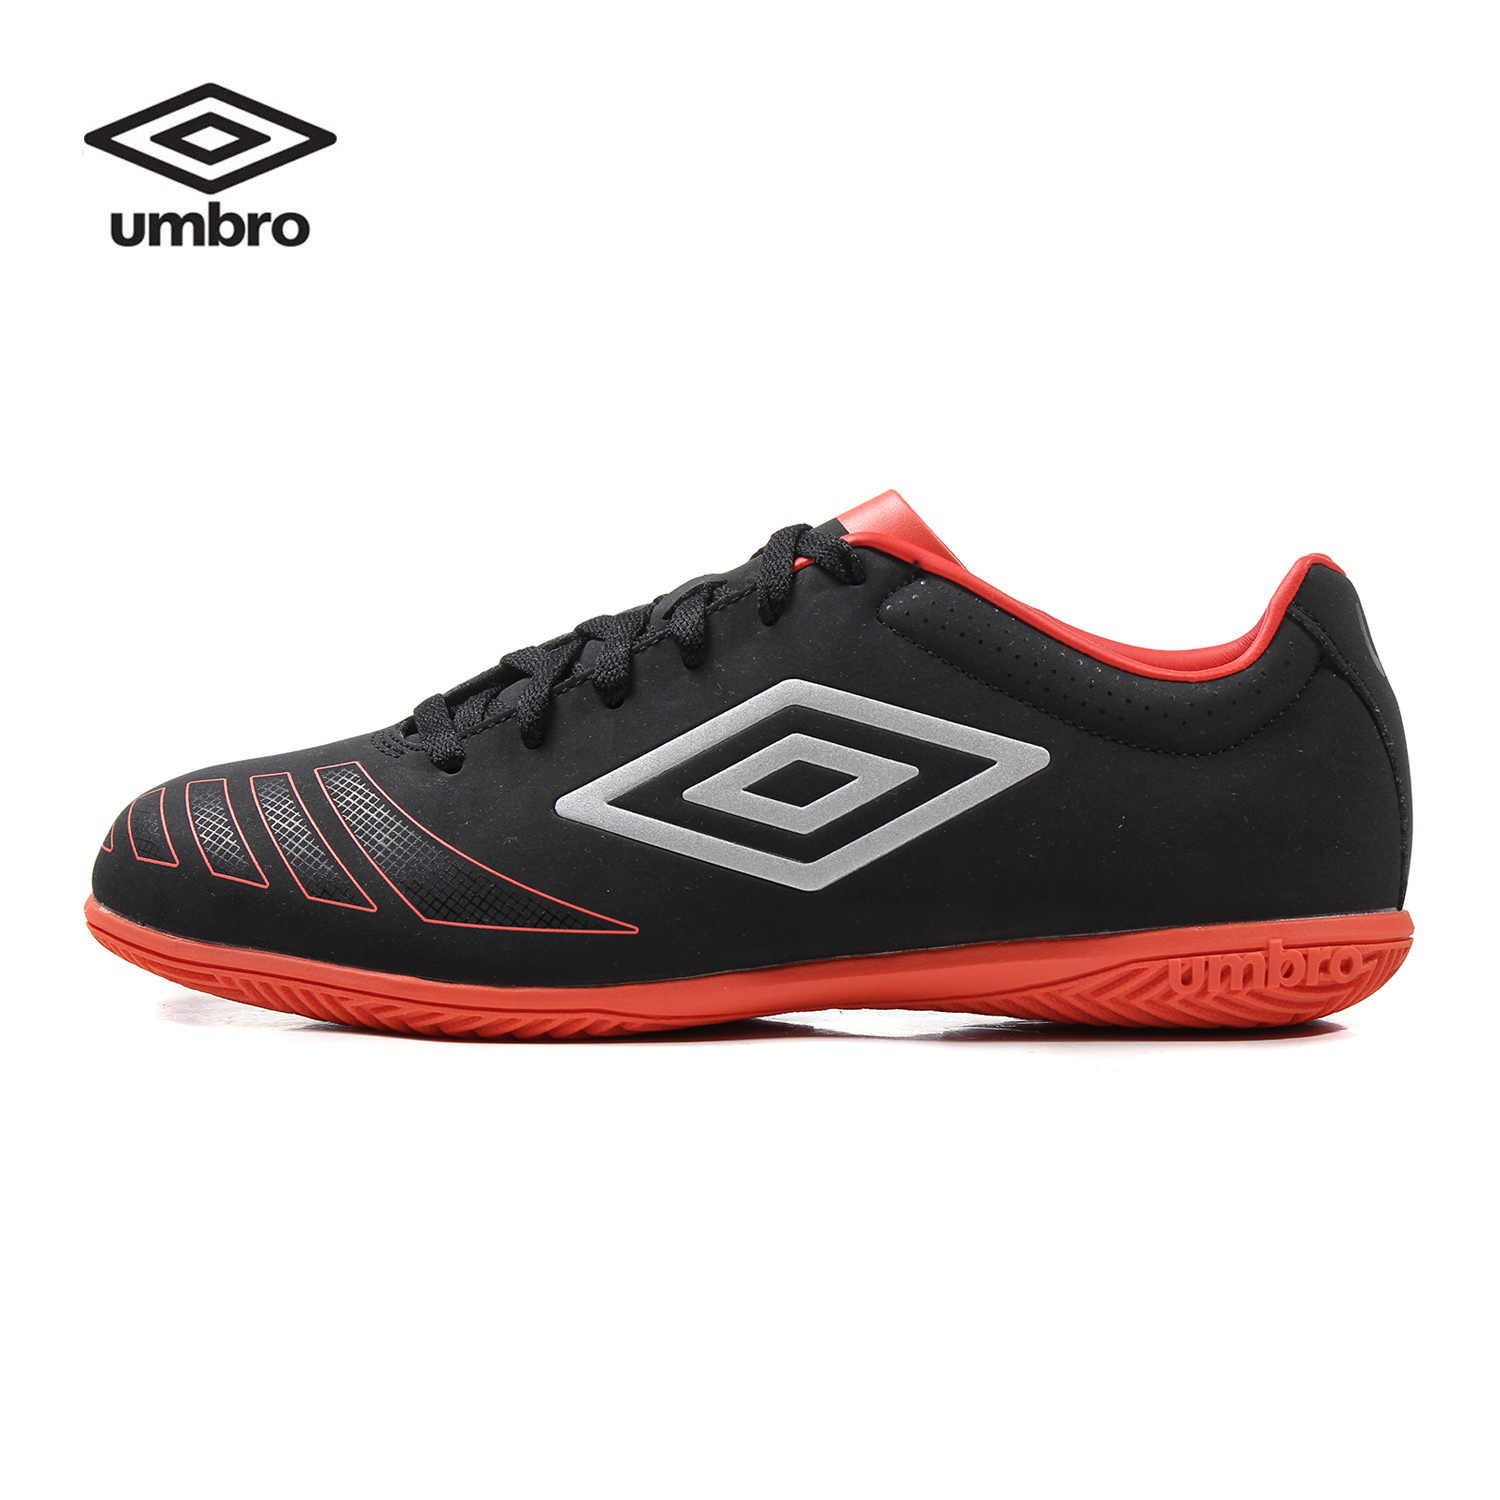 9c2ac0da2 Umbro Men Soccer Shoes Sports Sneaker Indoor Soccer Boots Turf Shoes  Leather Lace-up Professional